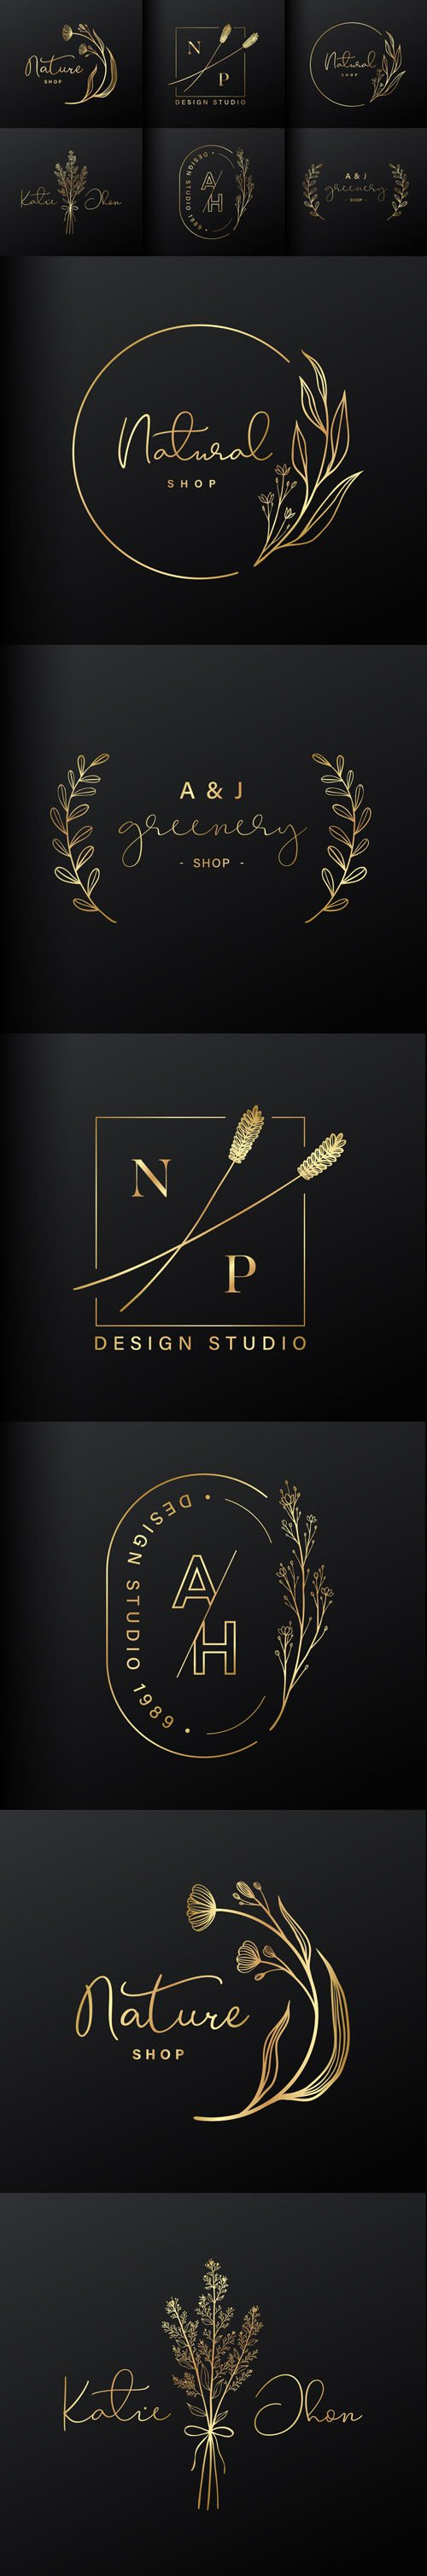 6 Luxury Logo Design Vector Collection for Branding and Coporate Identity